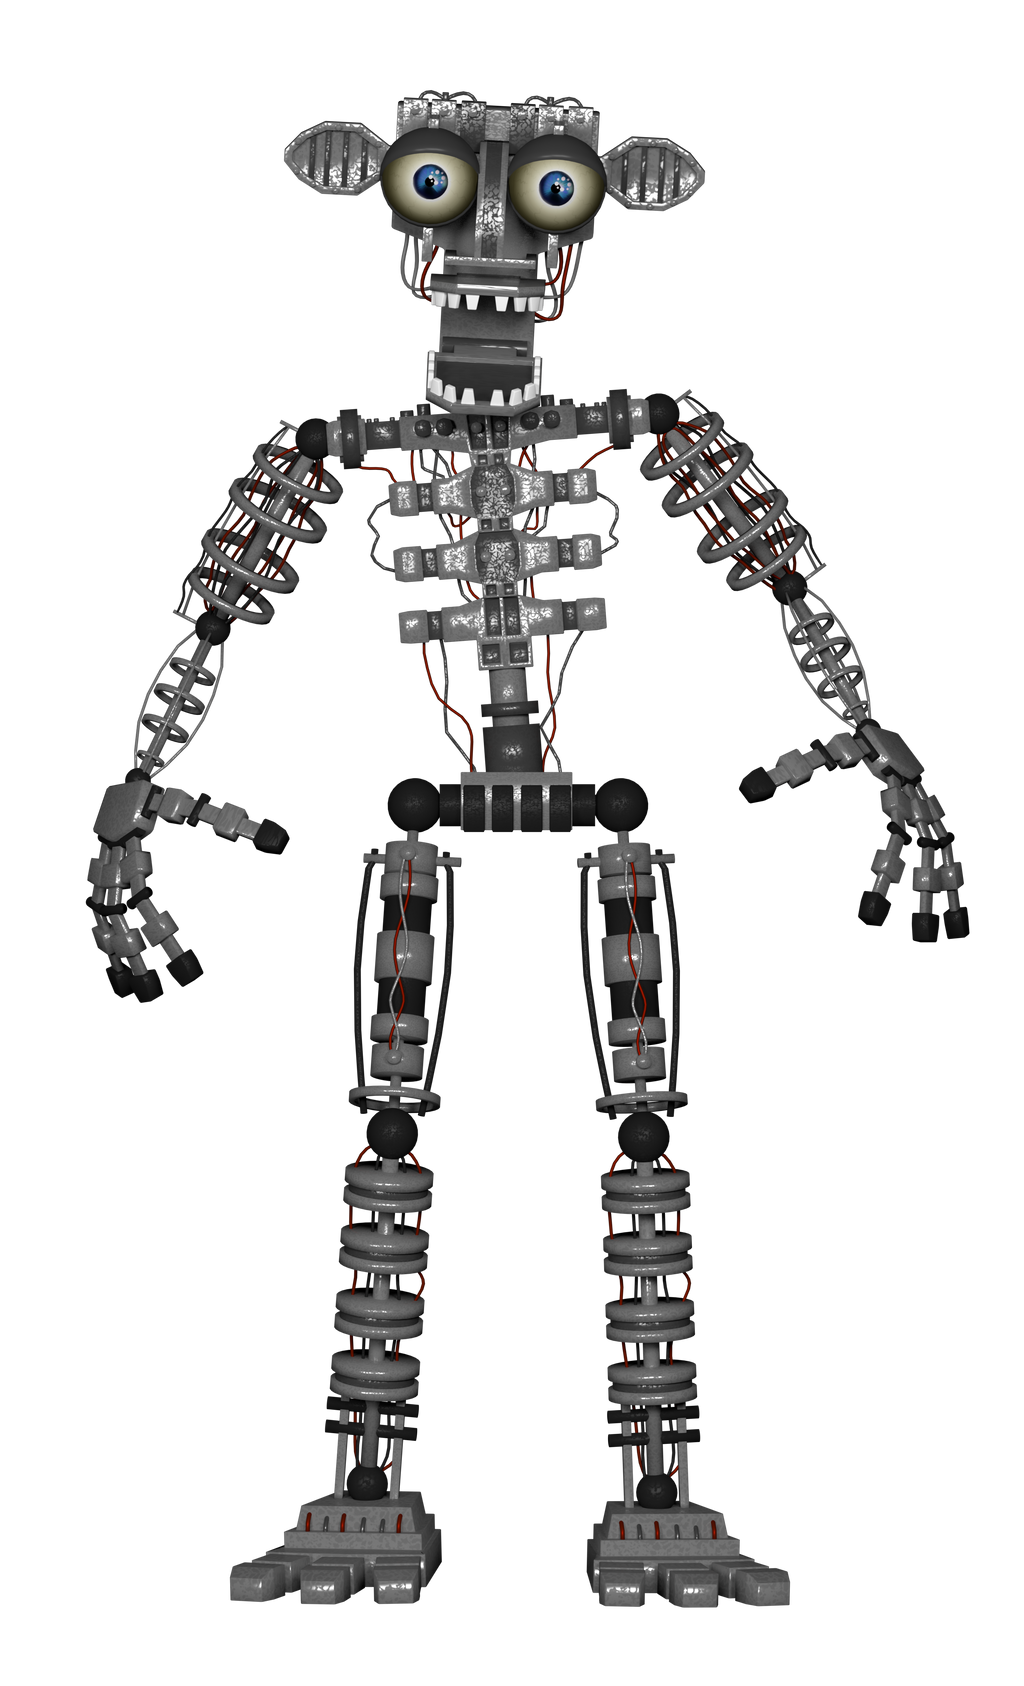 Fnaf 2 Endoskeleton By A1234agameer On Deviantart